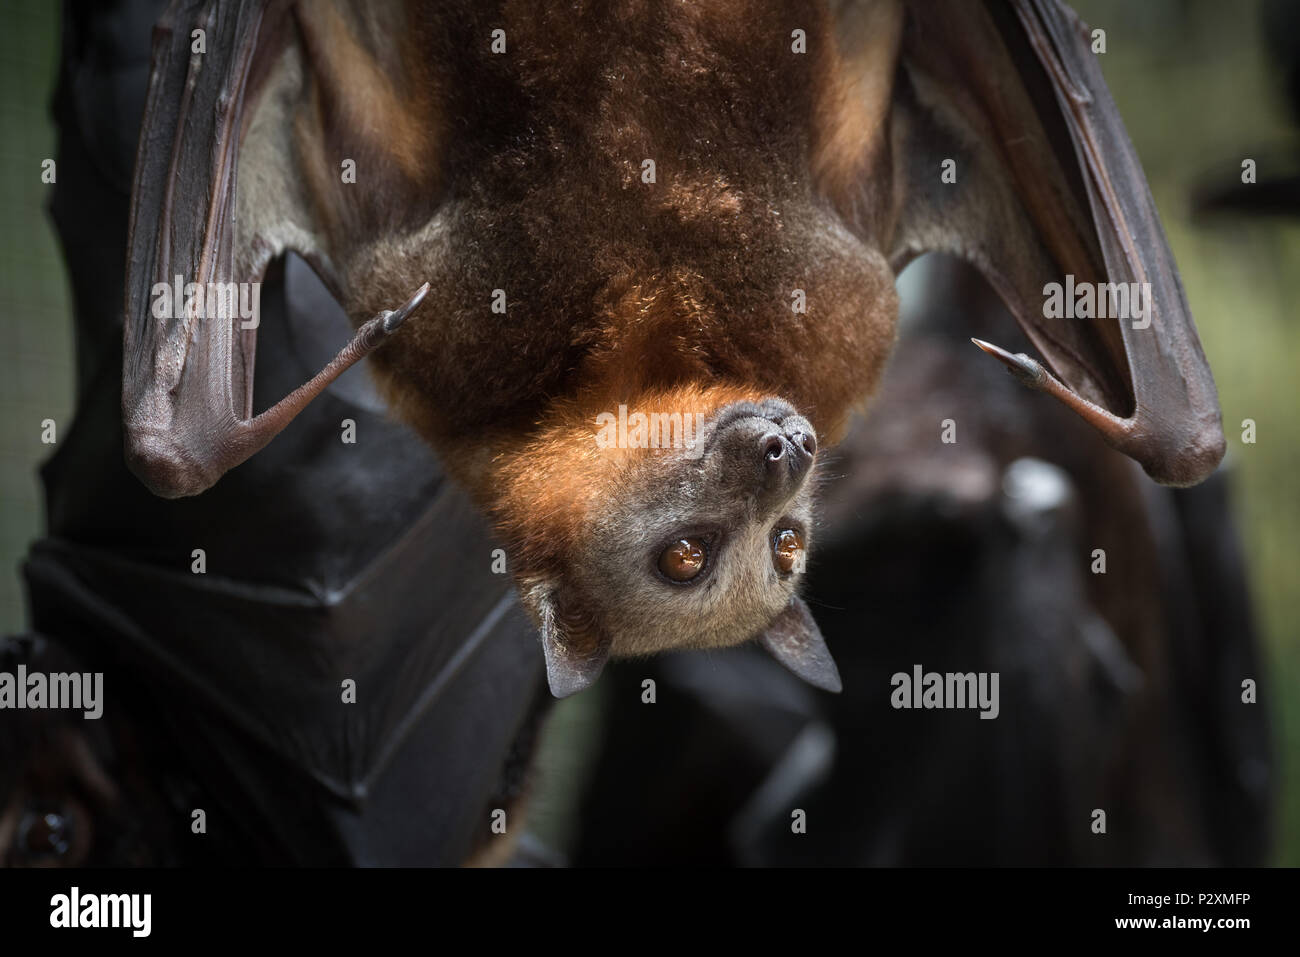 In Australia, flying foxes were rescued from hypothermia